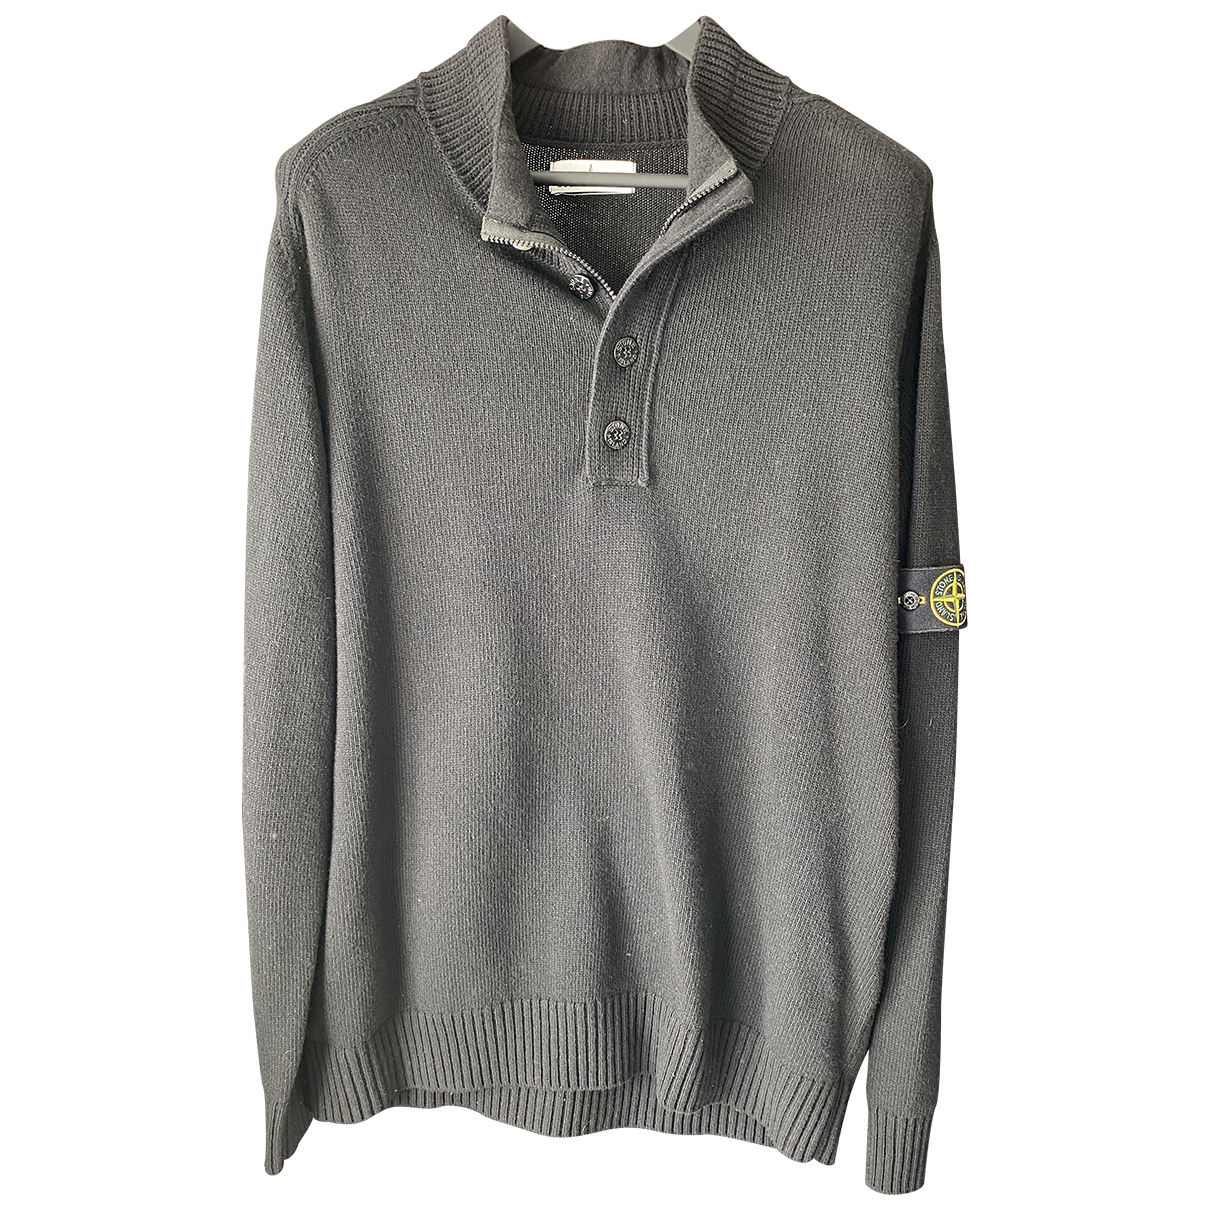 Stone Island N Black Wool Knitwear & Sweatshirts for Men XXXL International